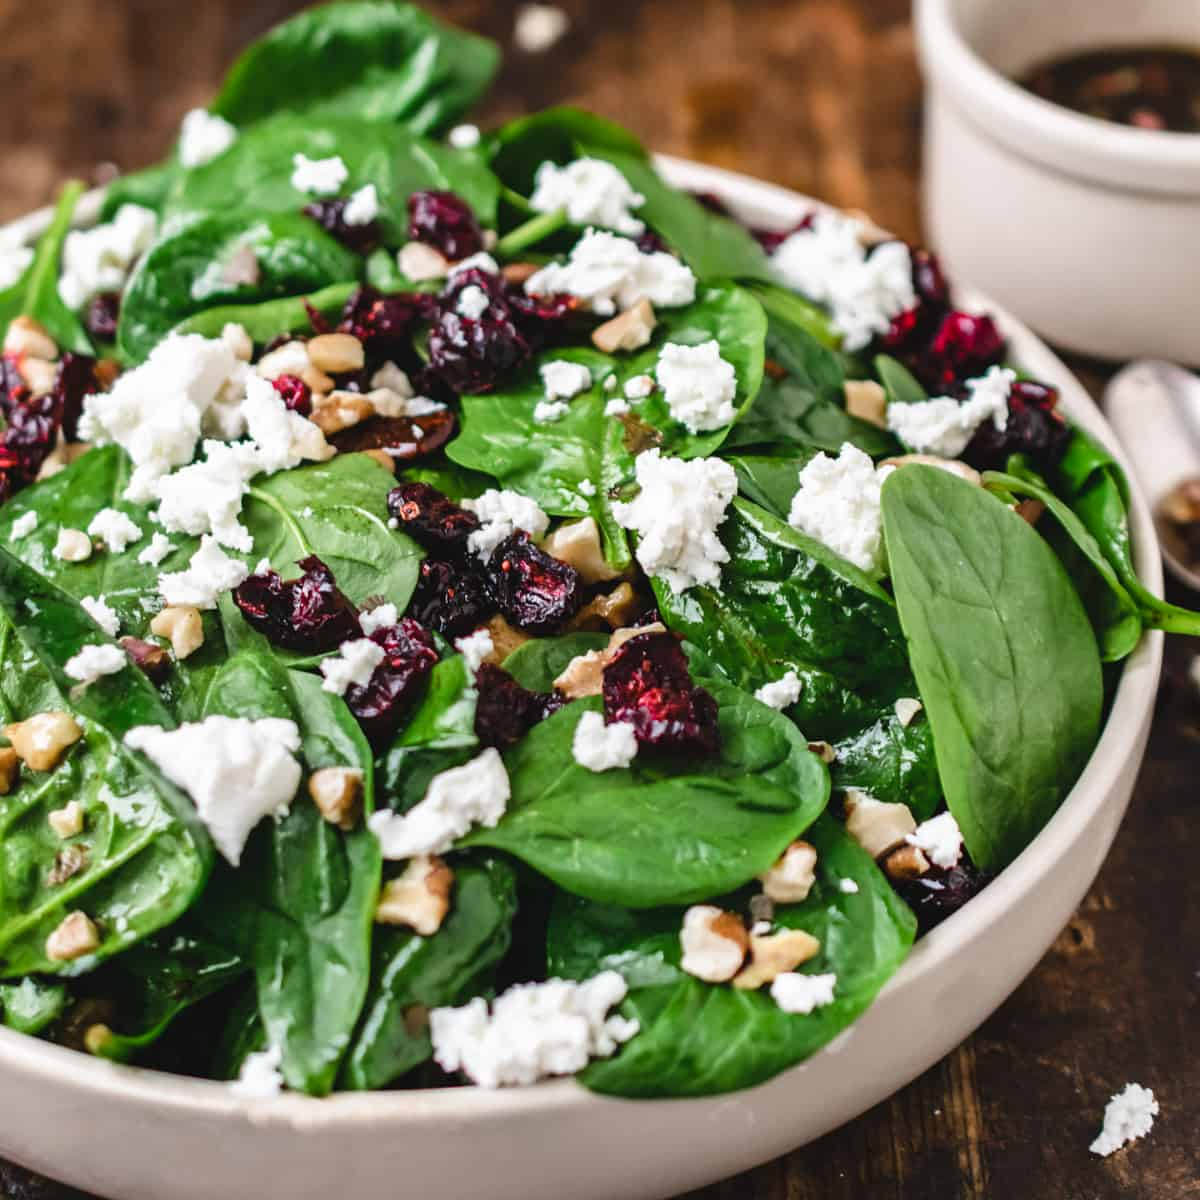 Salad bowl of baby spinach, goat cheese crumbles, dried cranberries, and walnuts with bowl of dressing.